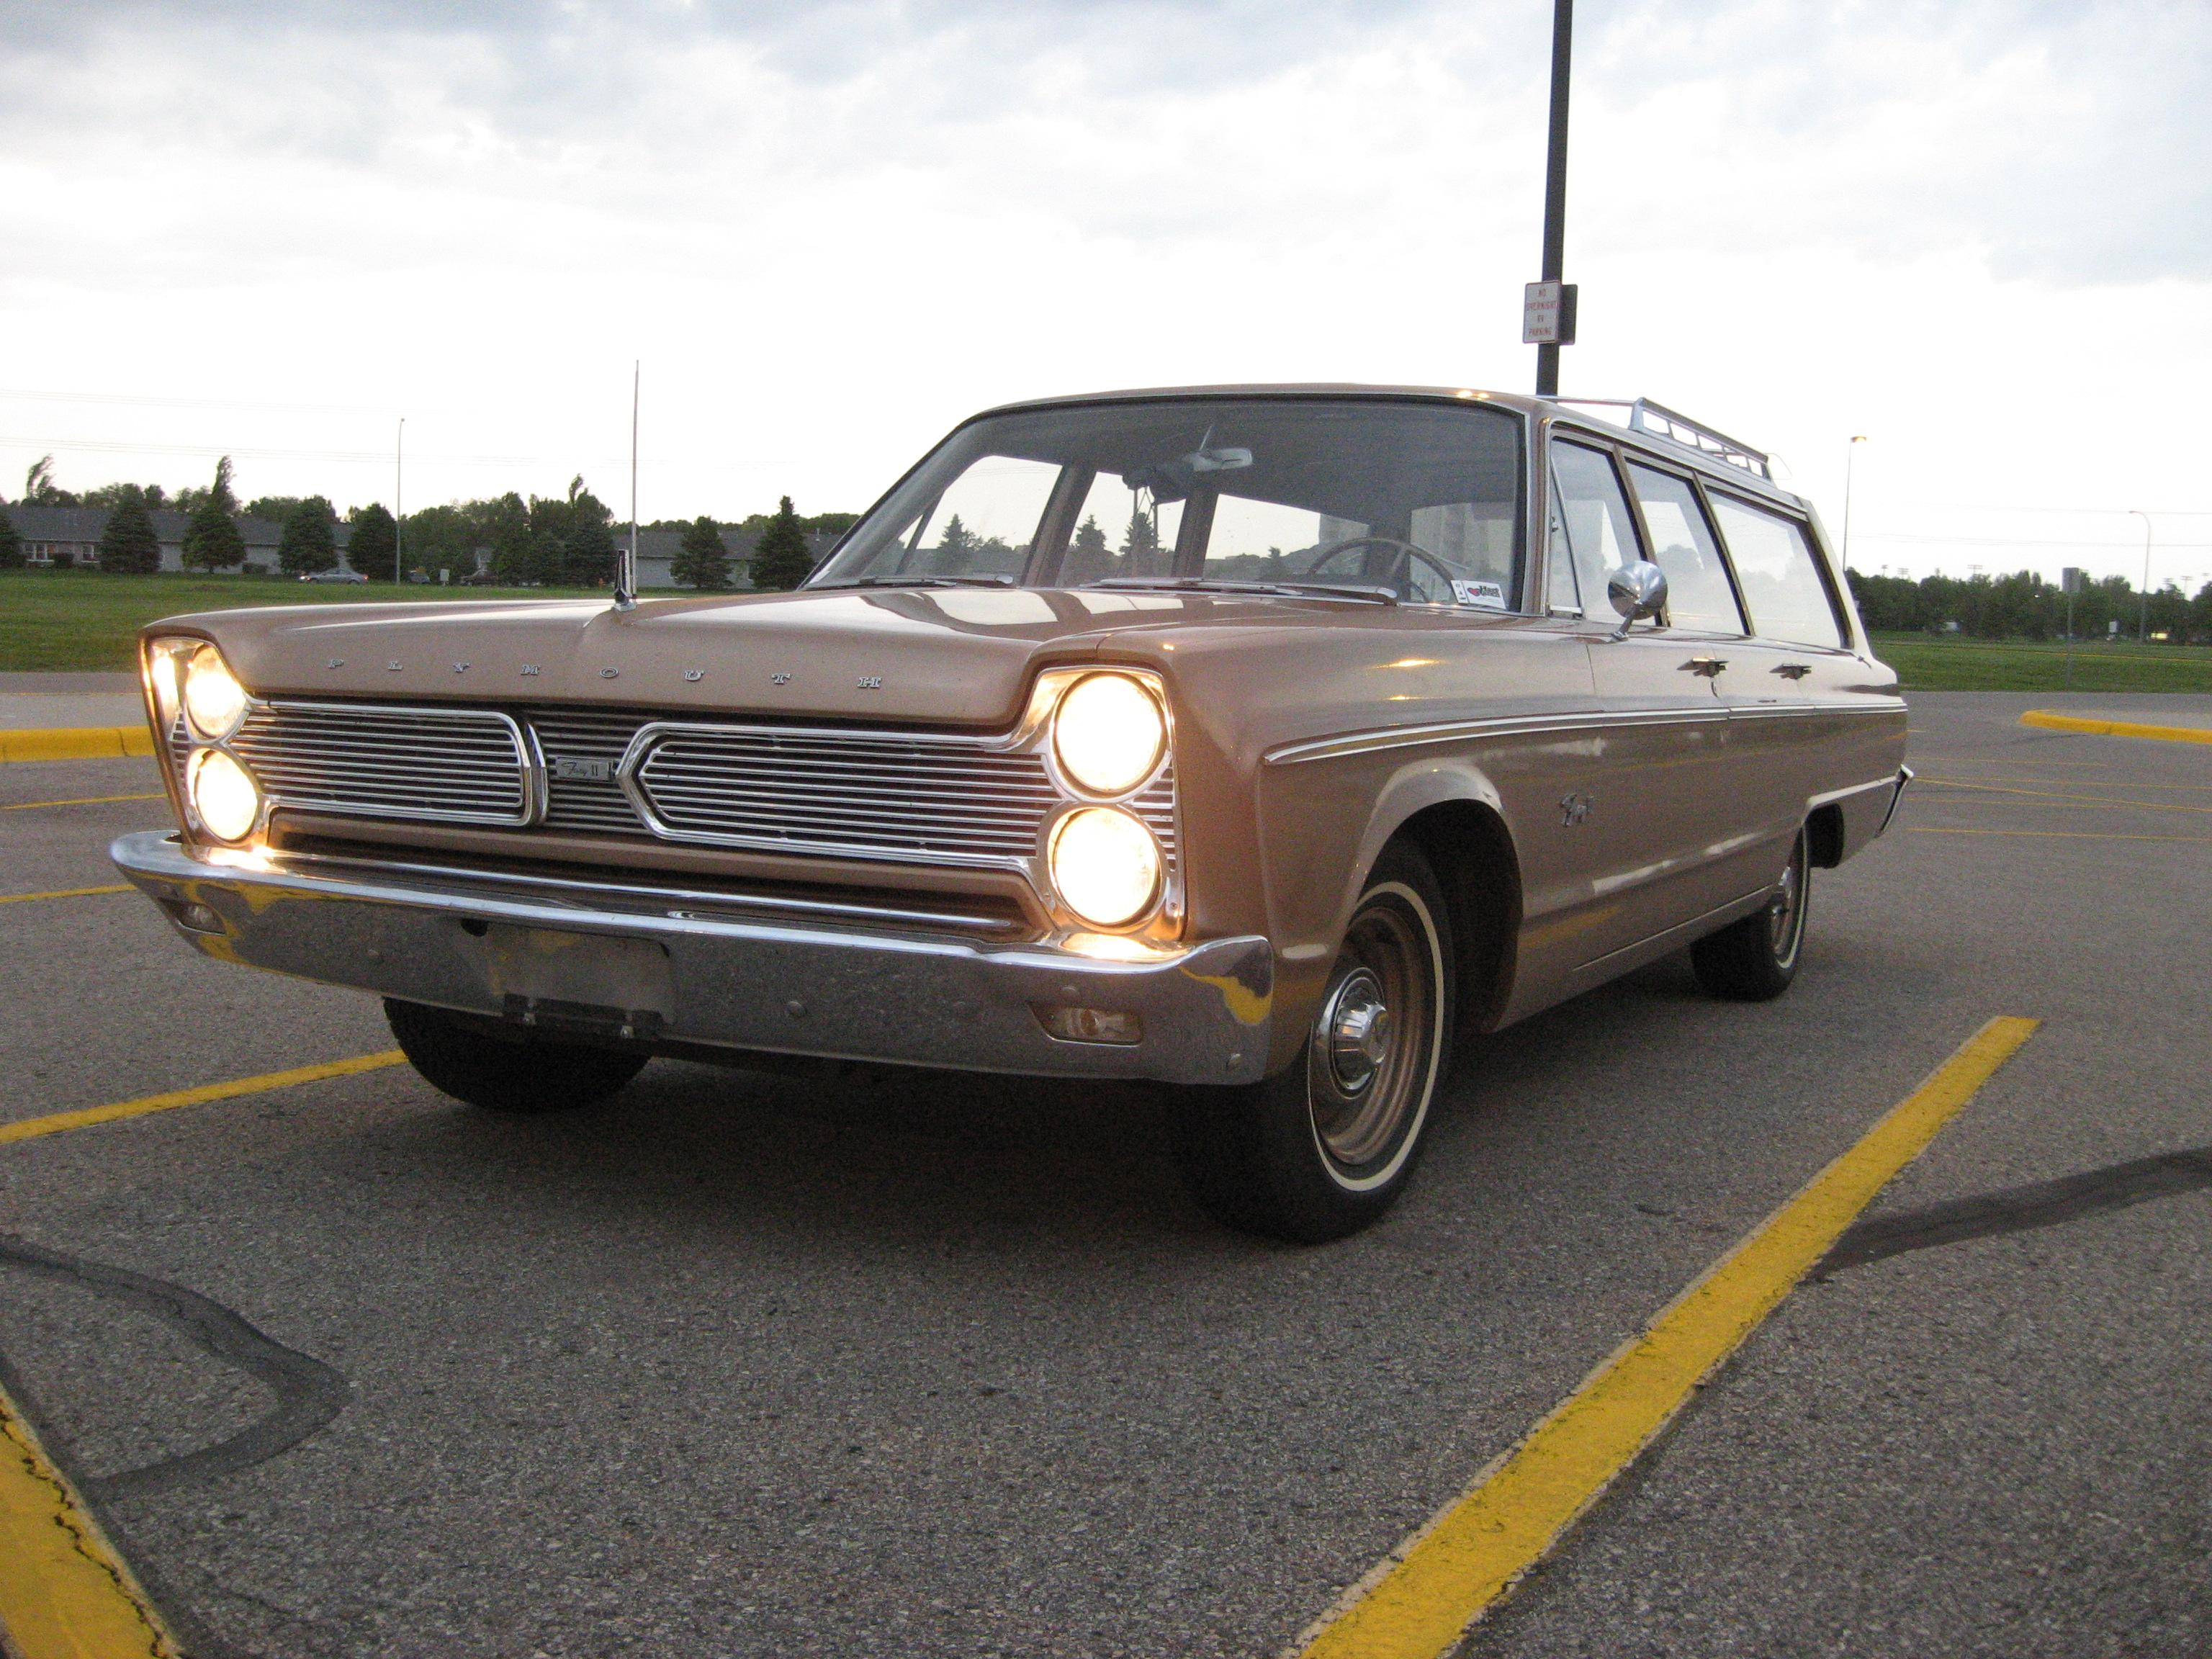 Timouth 1966 Plymouth Fury II